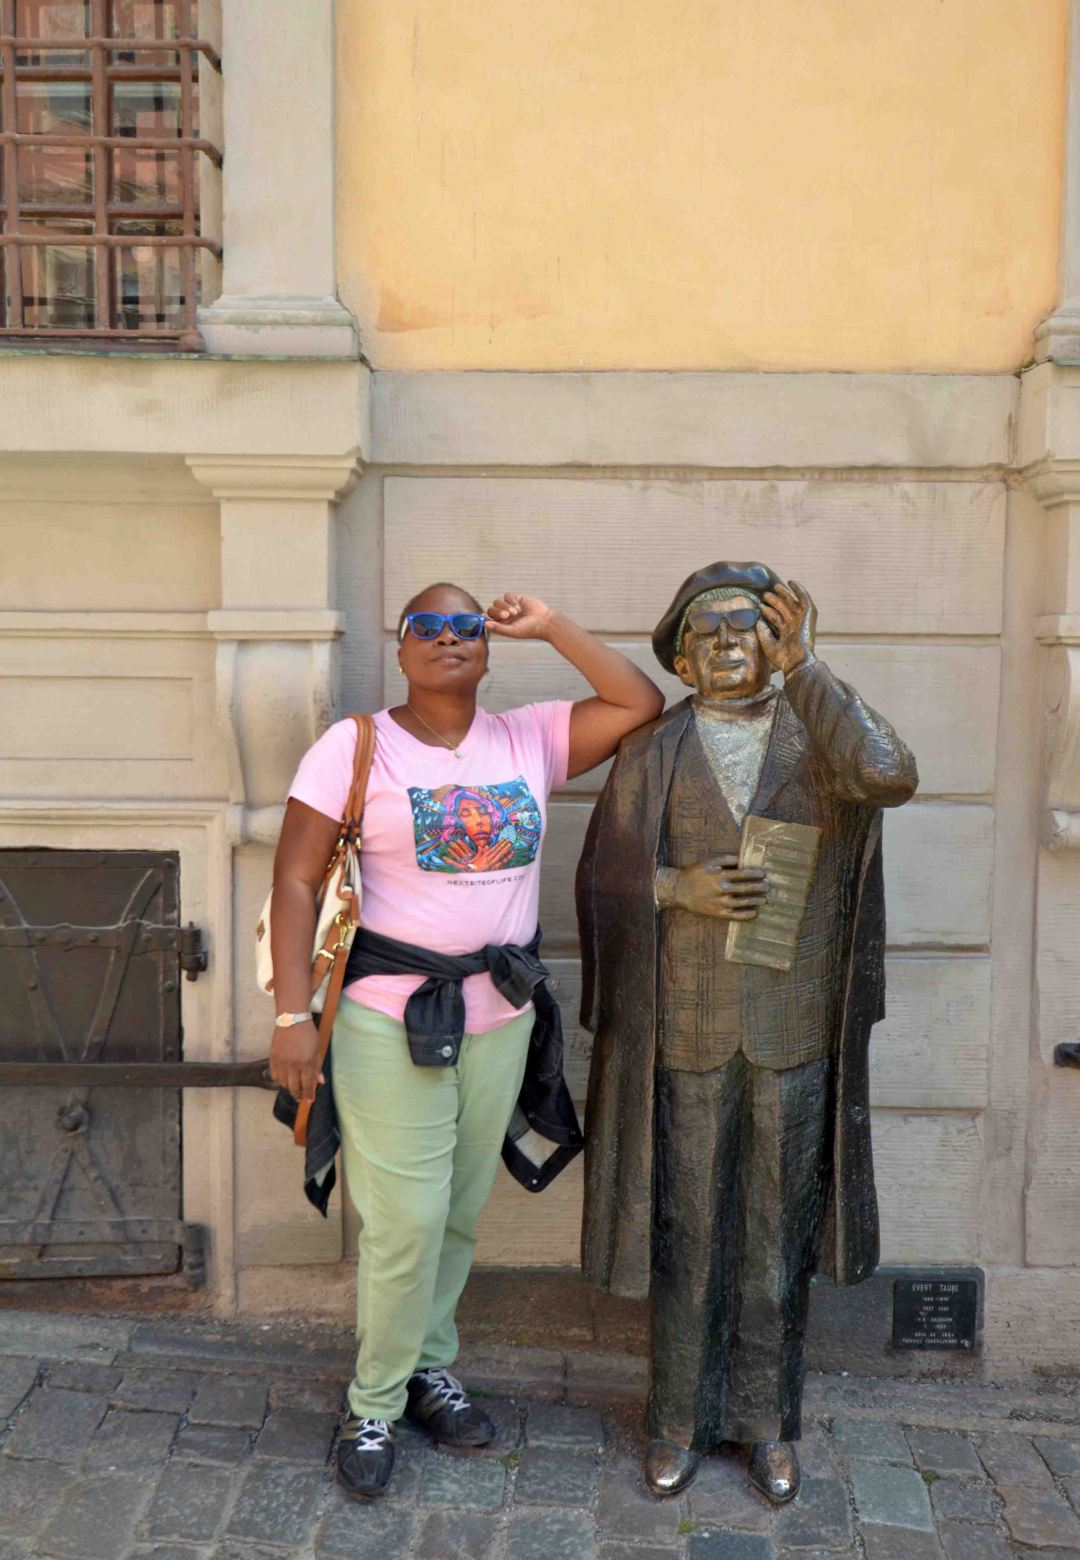 This fellow is helping me navigate Gamla Stan, the old city. What a great place!